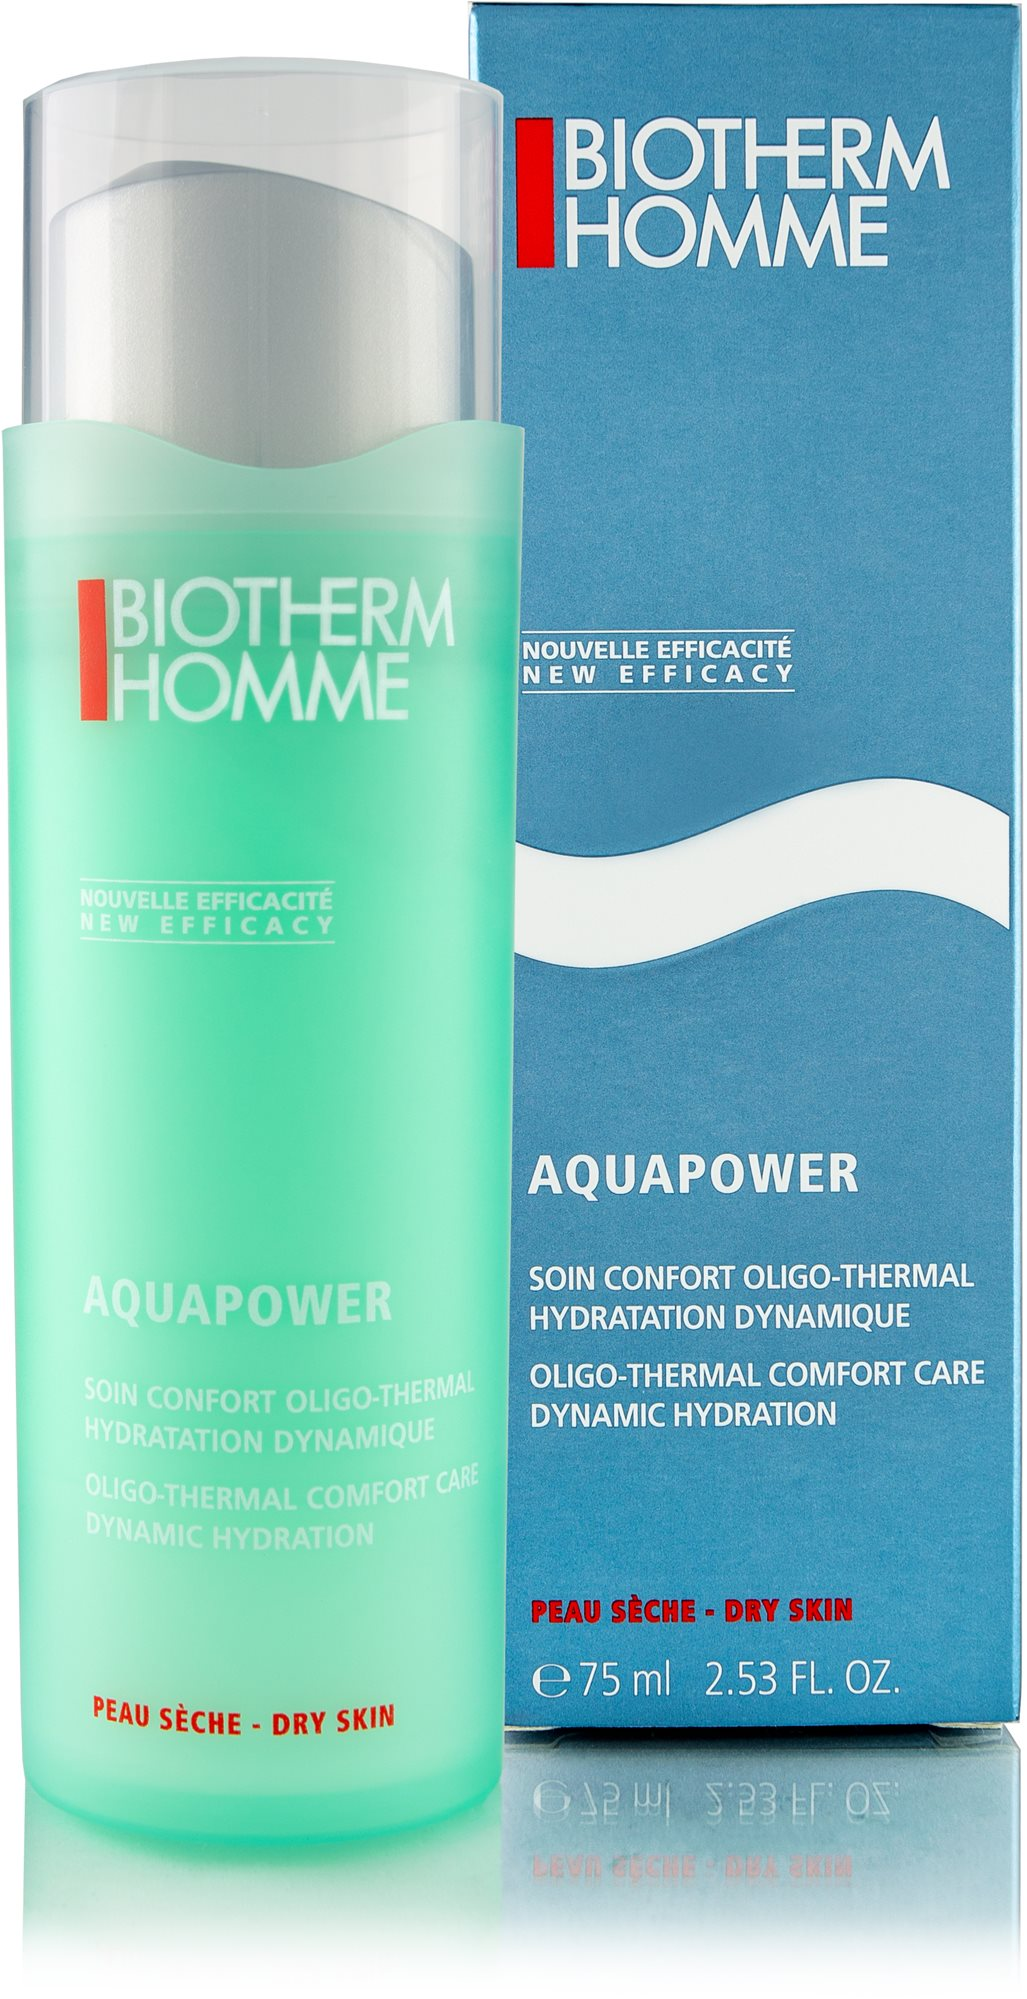 Biotherm Homme Aquapower Dry Skin 75 ml